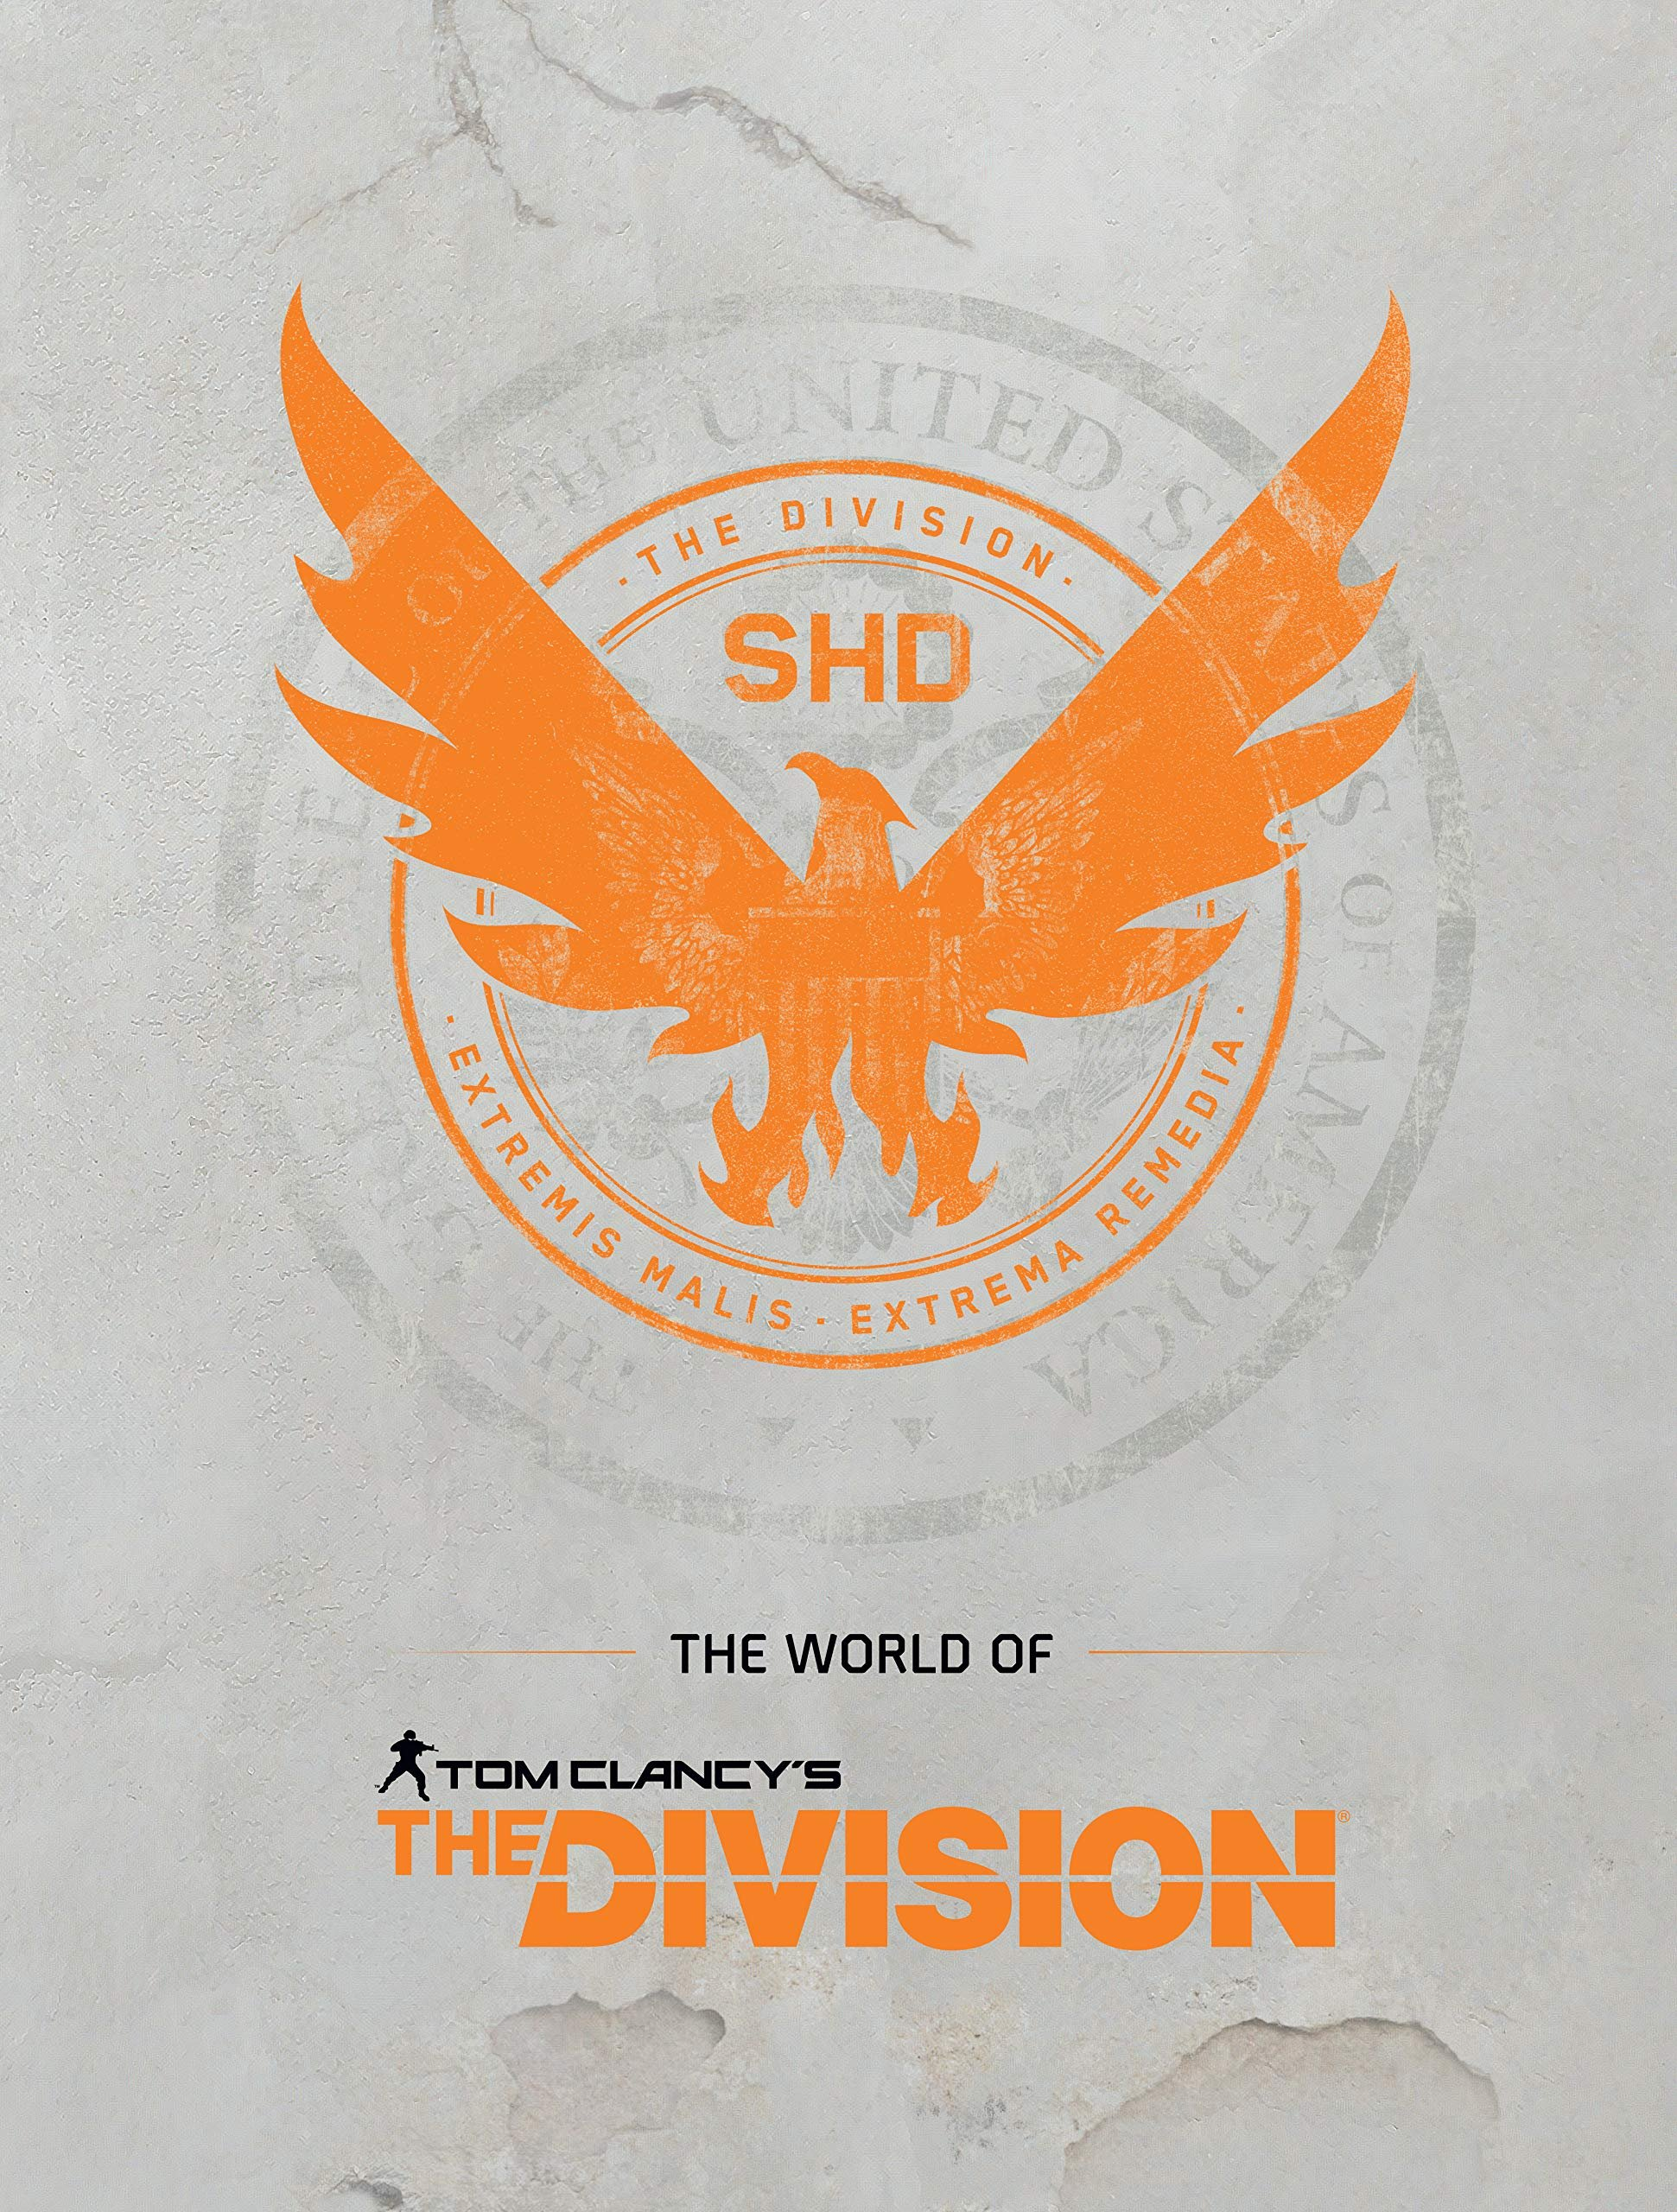 Tom Clancy's The Division - The World of Tom Clancy's The Division